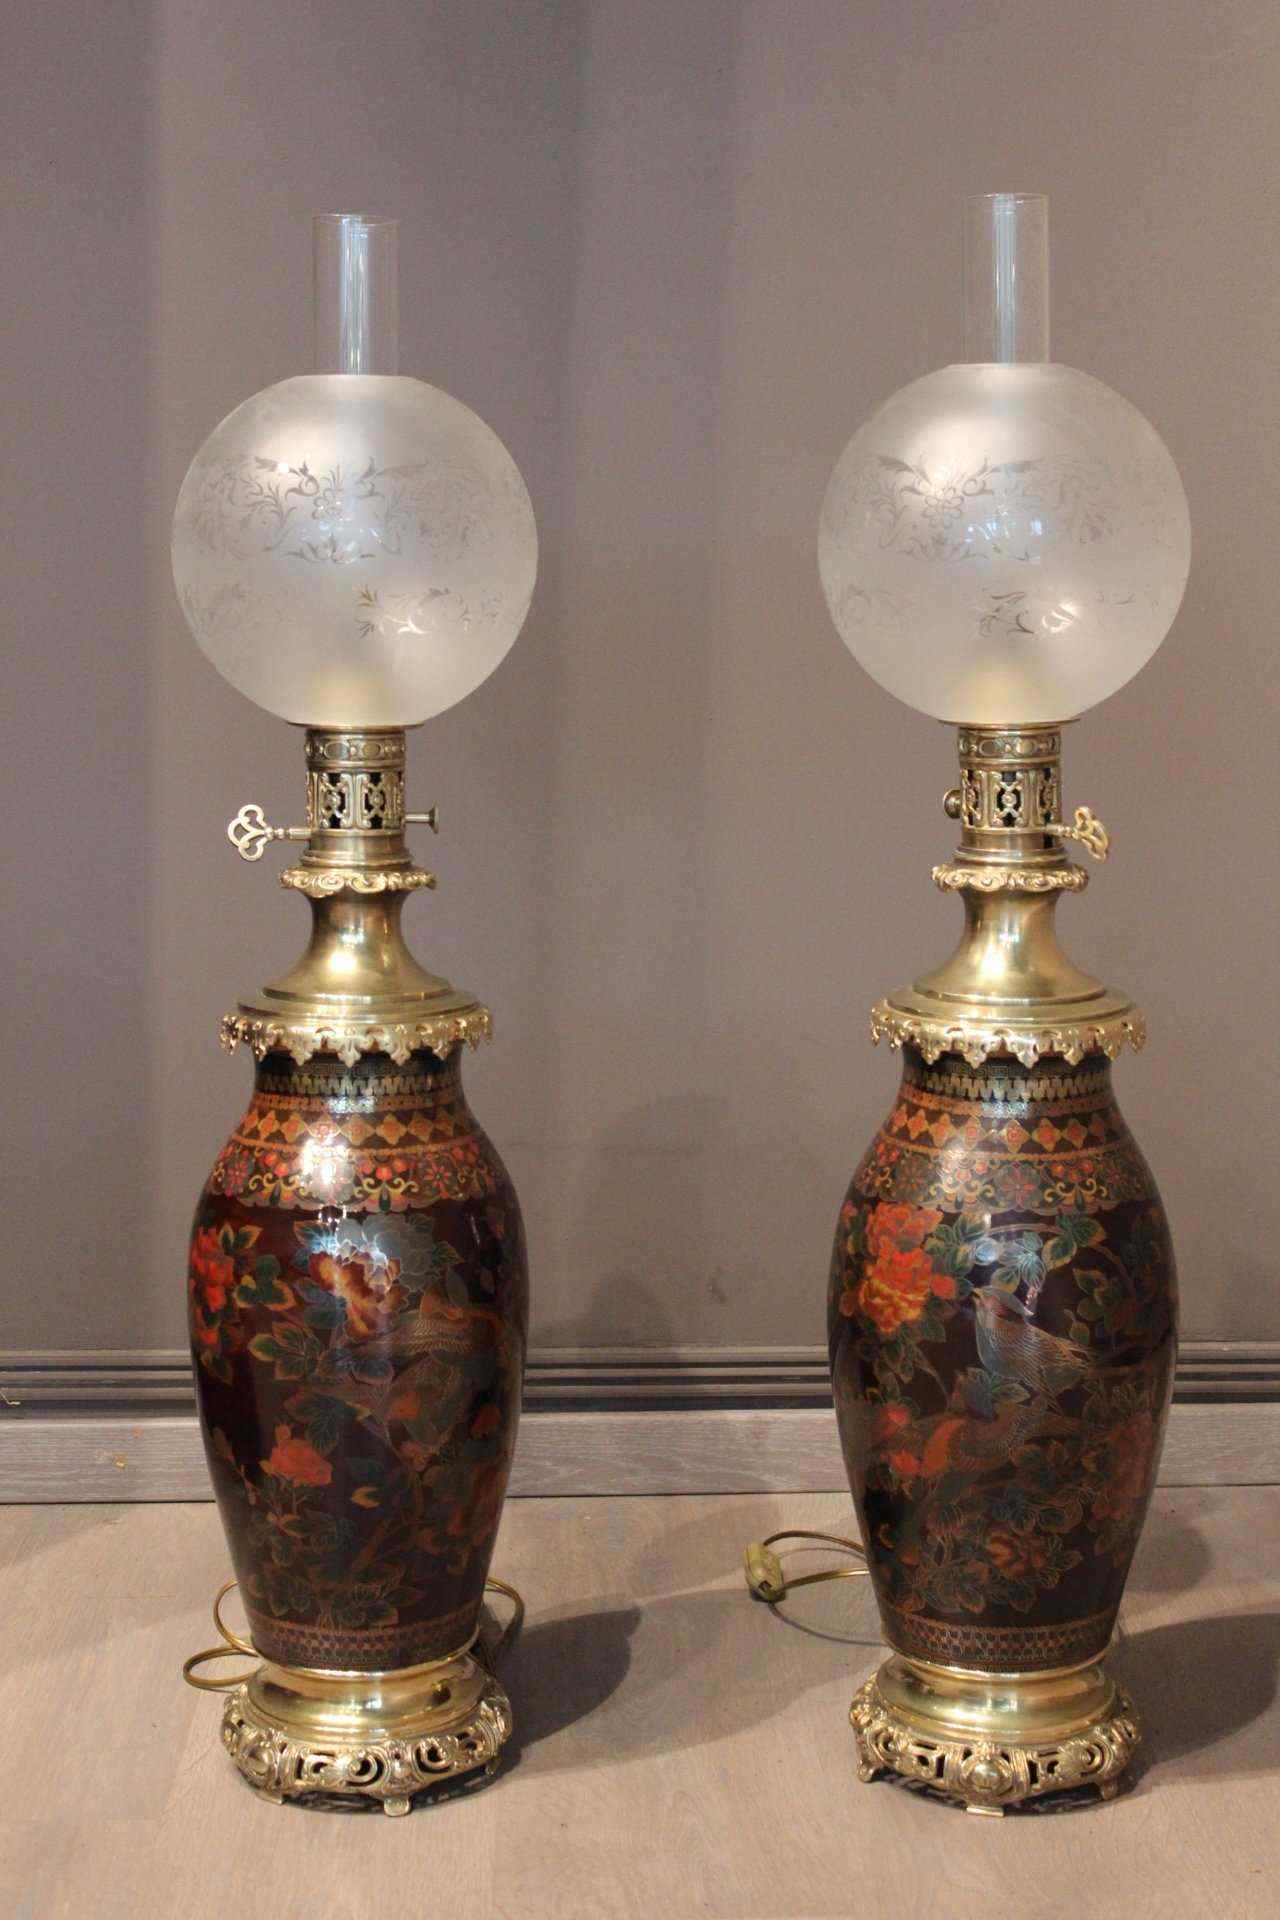 Pair of oil lamps compartmentalized nineteenth century